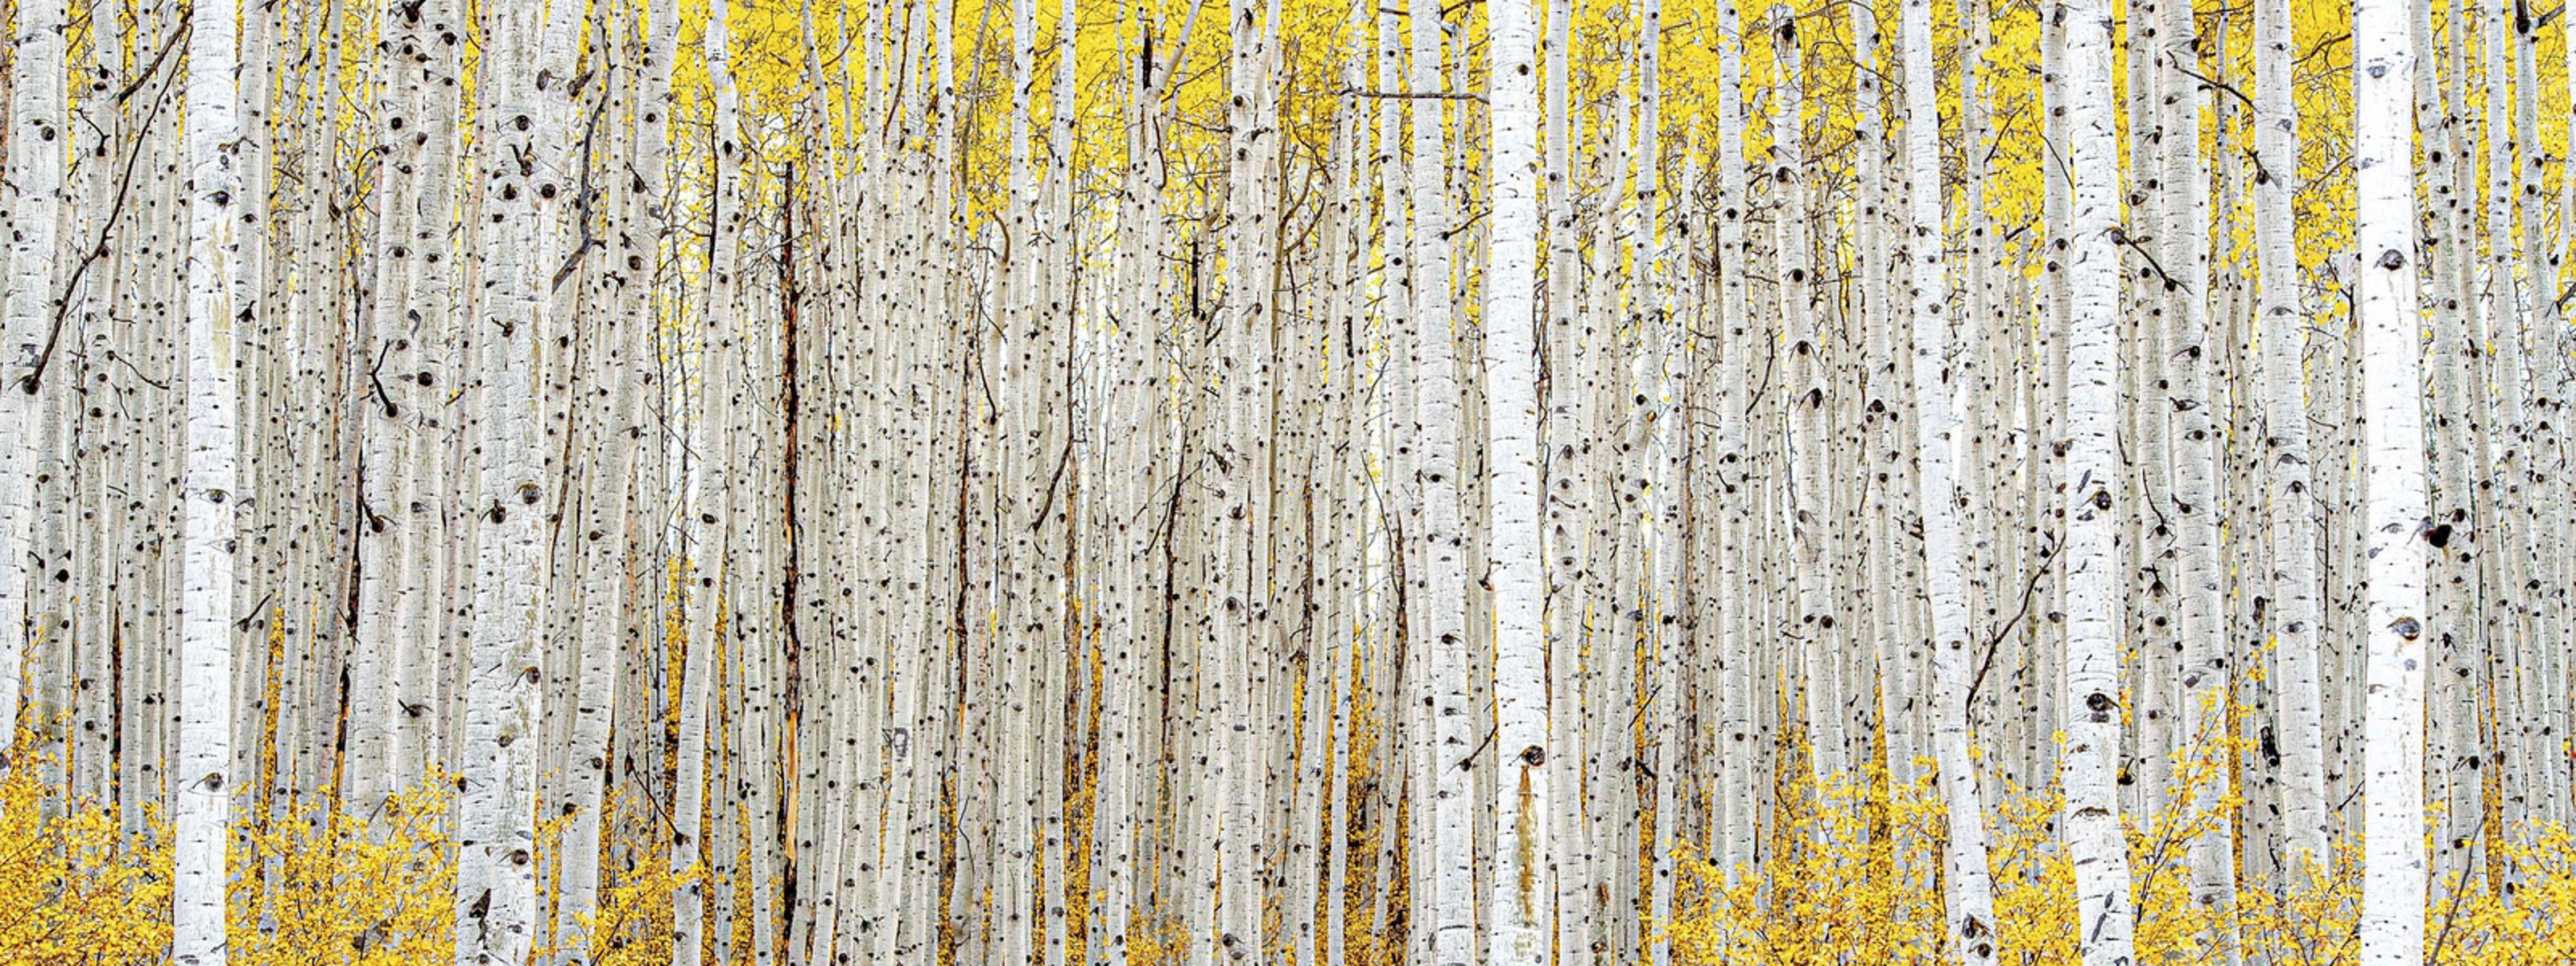 This grove of trees in Owl Creek just outside the town of Aspen, Colorado were putting on an amazing show in October.